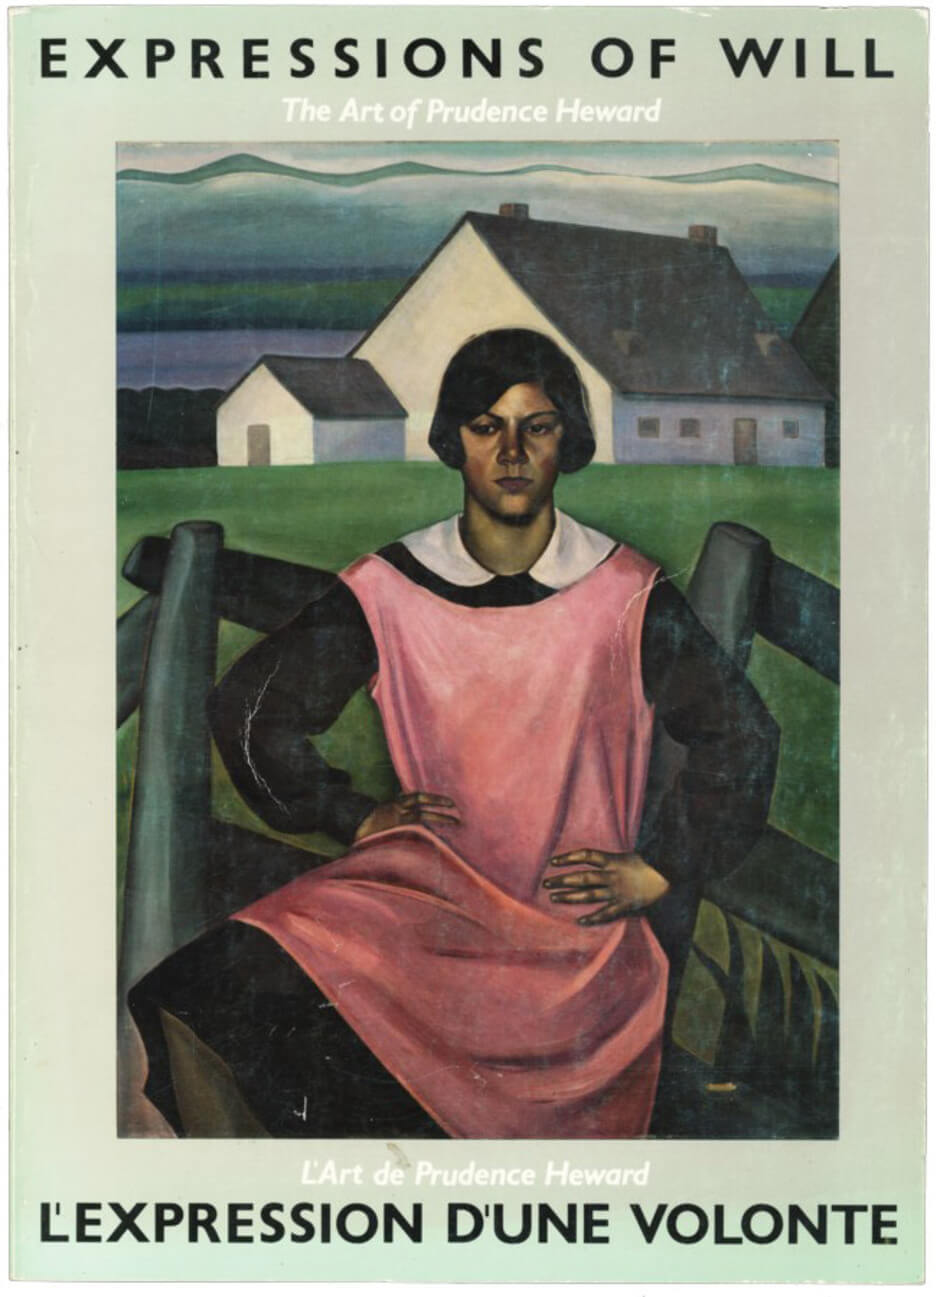 Art Canada Institute, Cover of exhibition catalogue Expressions of Will: The Art of Prudence Heward curated by Natalie Luckyj.